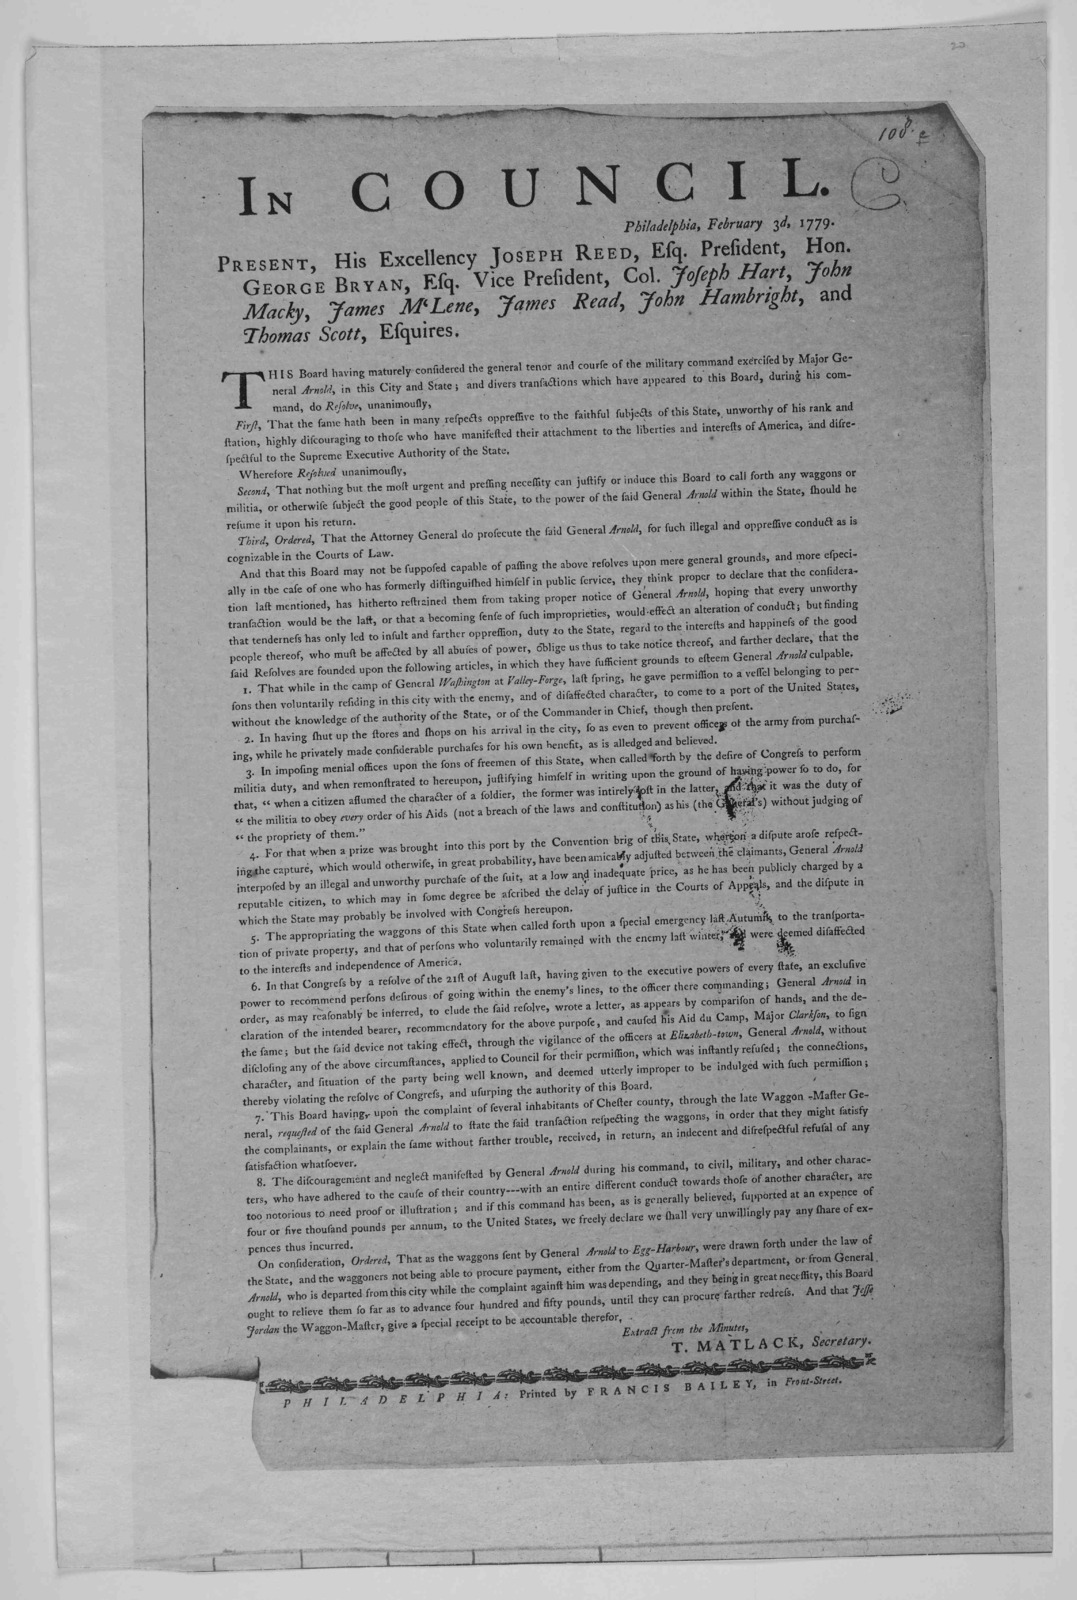 In Council. Philadelphia, February 3d. 1779 ... This board having maturely considered the general tenor and course of the military command exercised by Major General Arnold, in this City and State; and divers transactions which have appeared to